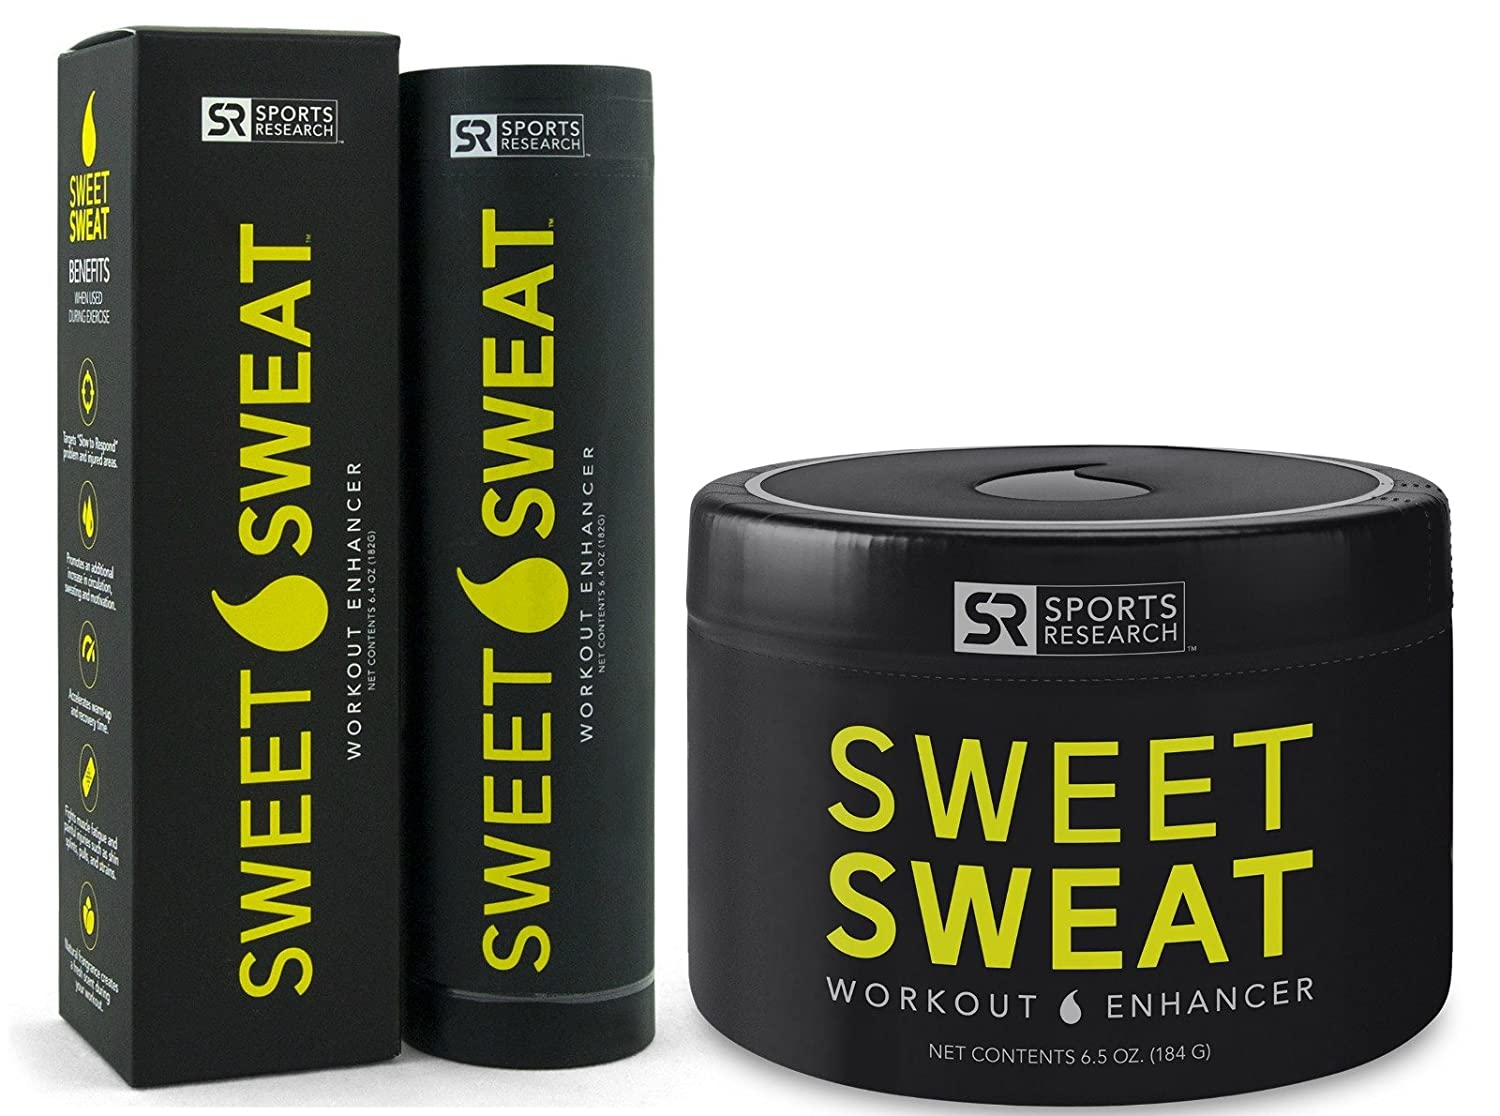 87744d4a3f Sweet sweat weight loss combo pack includes sweet sweat stick and sweet  sweat jar health personal